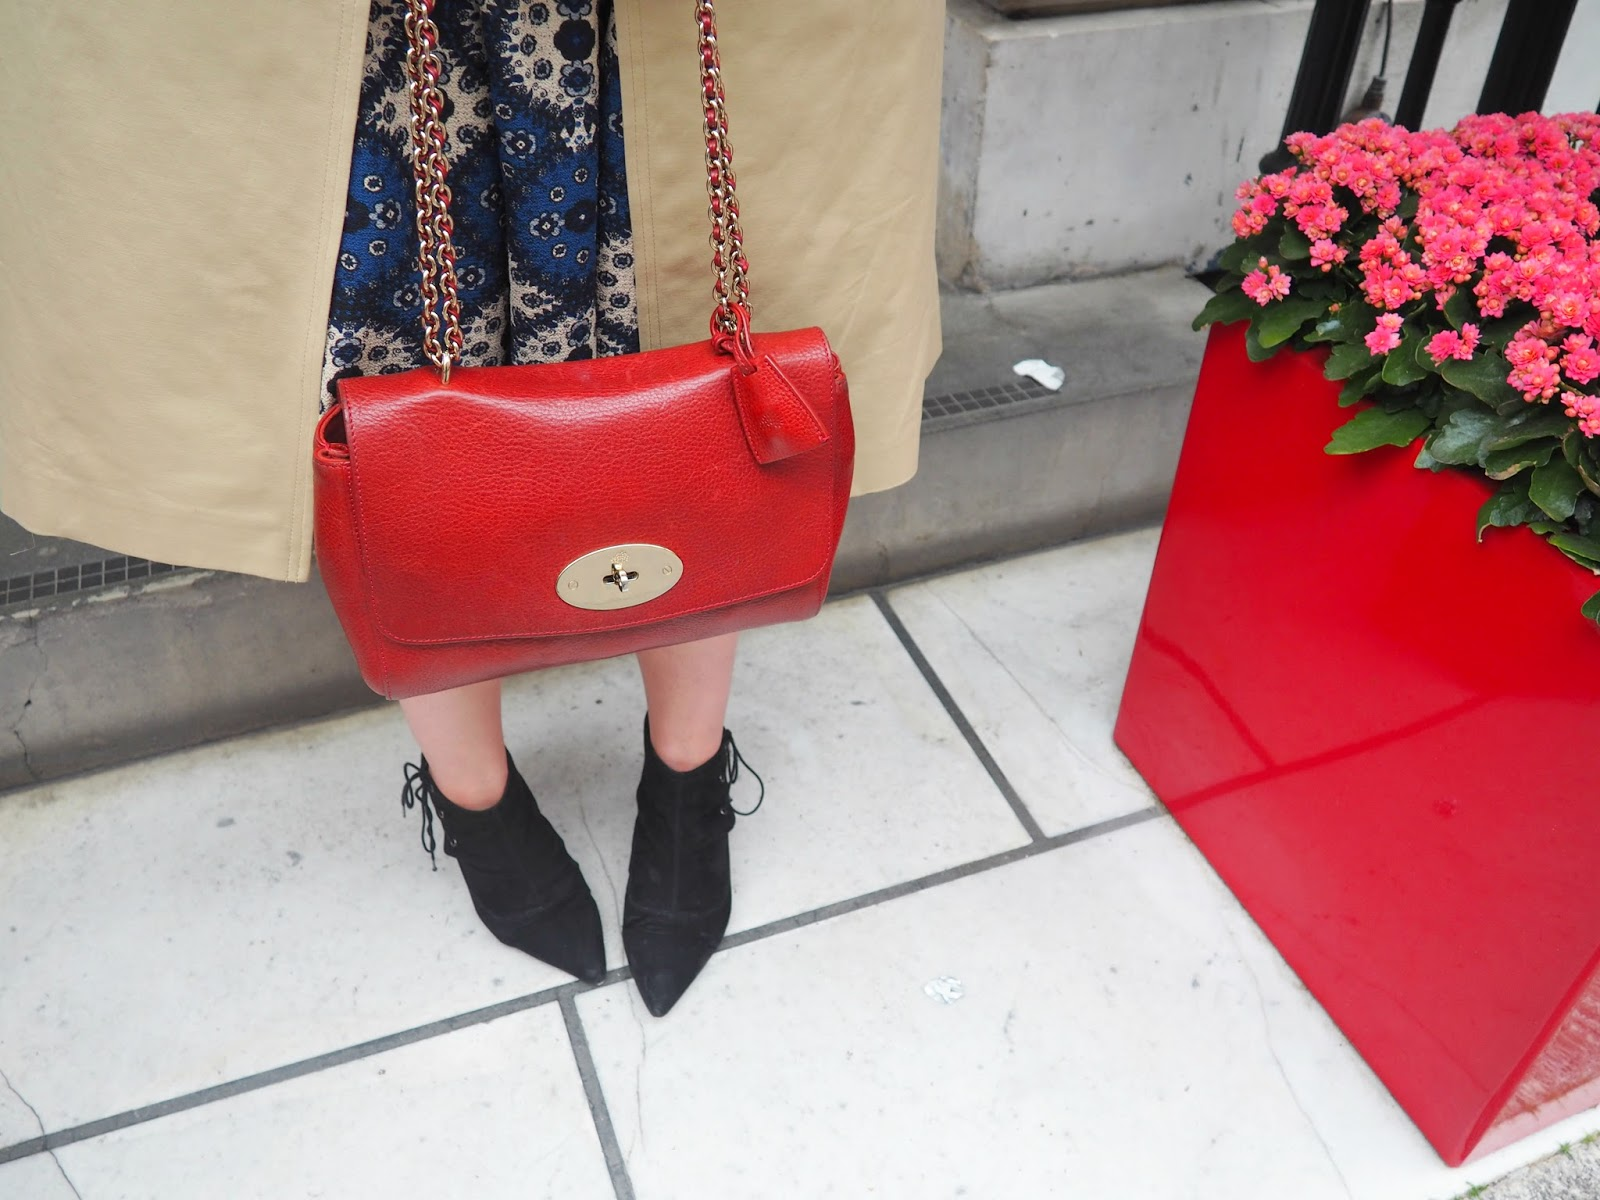 Blue paisley midi dress  Boohoo via ASOS (similar) Black pointed suedette  ankle boots  ASOS (similar) Poppy red lily bag  Mulberry f96f4d6a27004